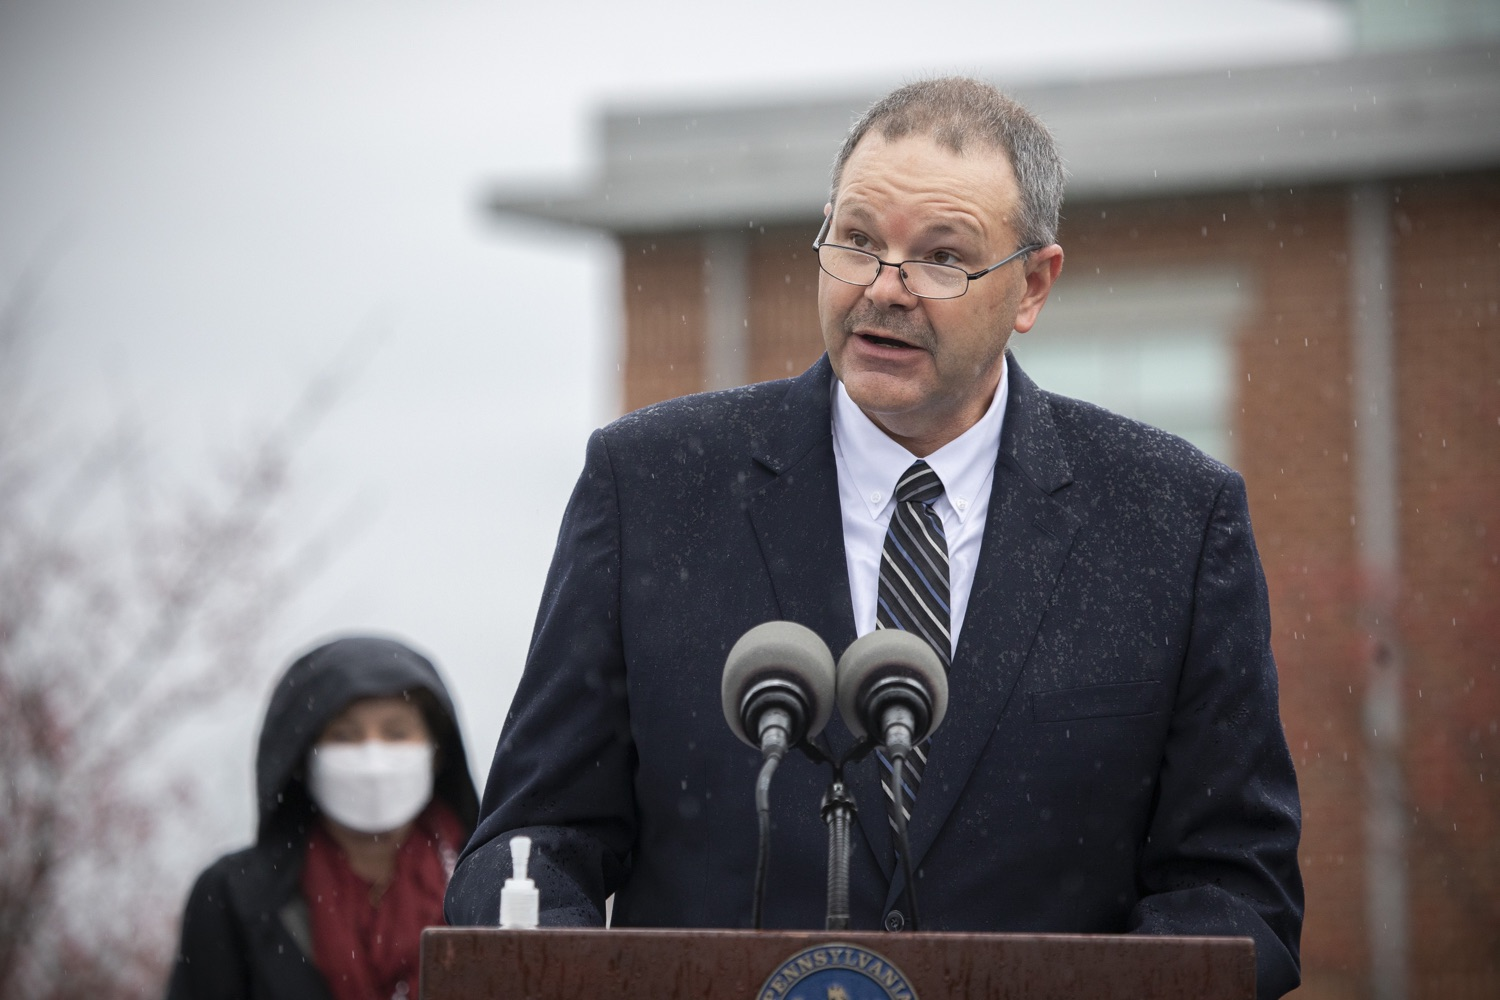 "<a href=""https://filesource.wostreaming.net/commonwealthofpa/photo/18395_doh_title32_dz_016.jpg"" target=""_blank"">⇣ Download Photo<br></a>PEMA Director Randy Padfield speaking to the press.   The Wolf Administration, with the support of U.S. Sen. Bob Casey and U.S. Rep. Chrissy Houlahan, today urged the federal government to reauthorize Title 32 to allow Pennsylvania National Guard members to carry out missions that assist long-term care facilities affected by COVID-19 in Pennsylvania. Harrisburg, PA  November 12, 2020  .."